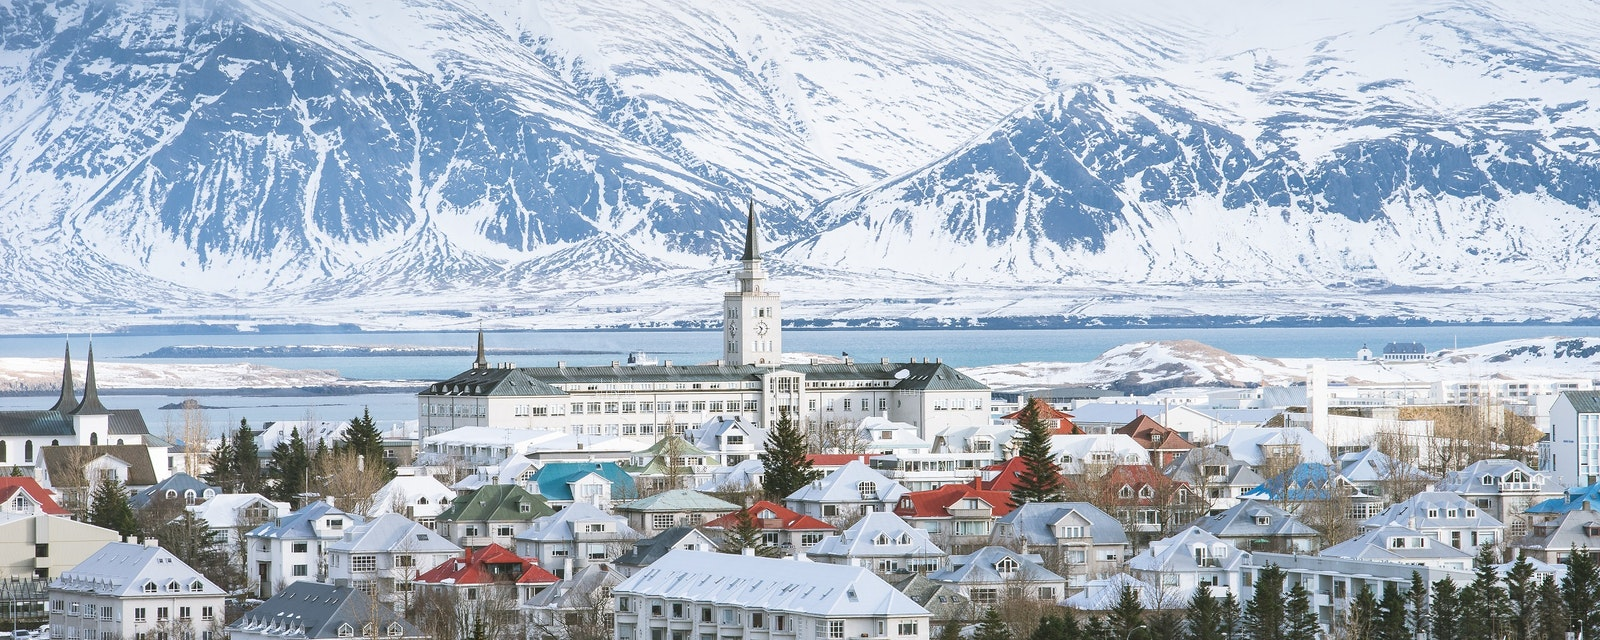 Reykjavik,The,Capital,City,Of,Iceland,In,Winter,Snow,View